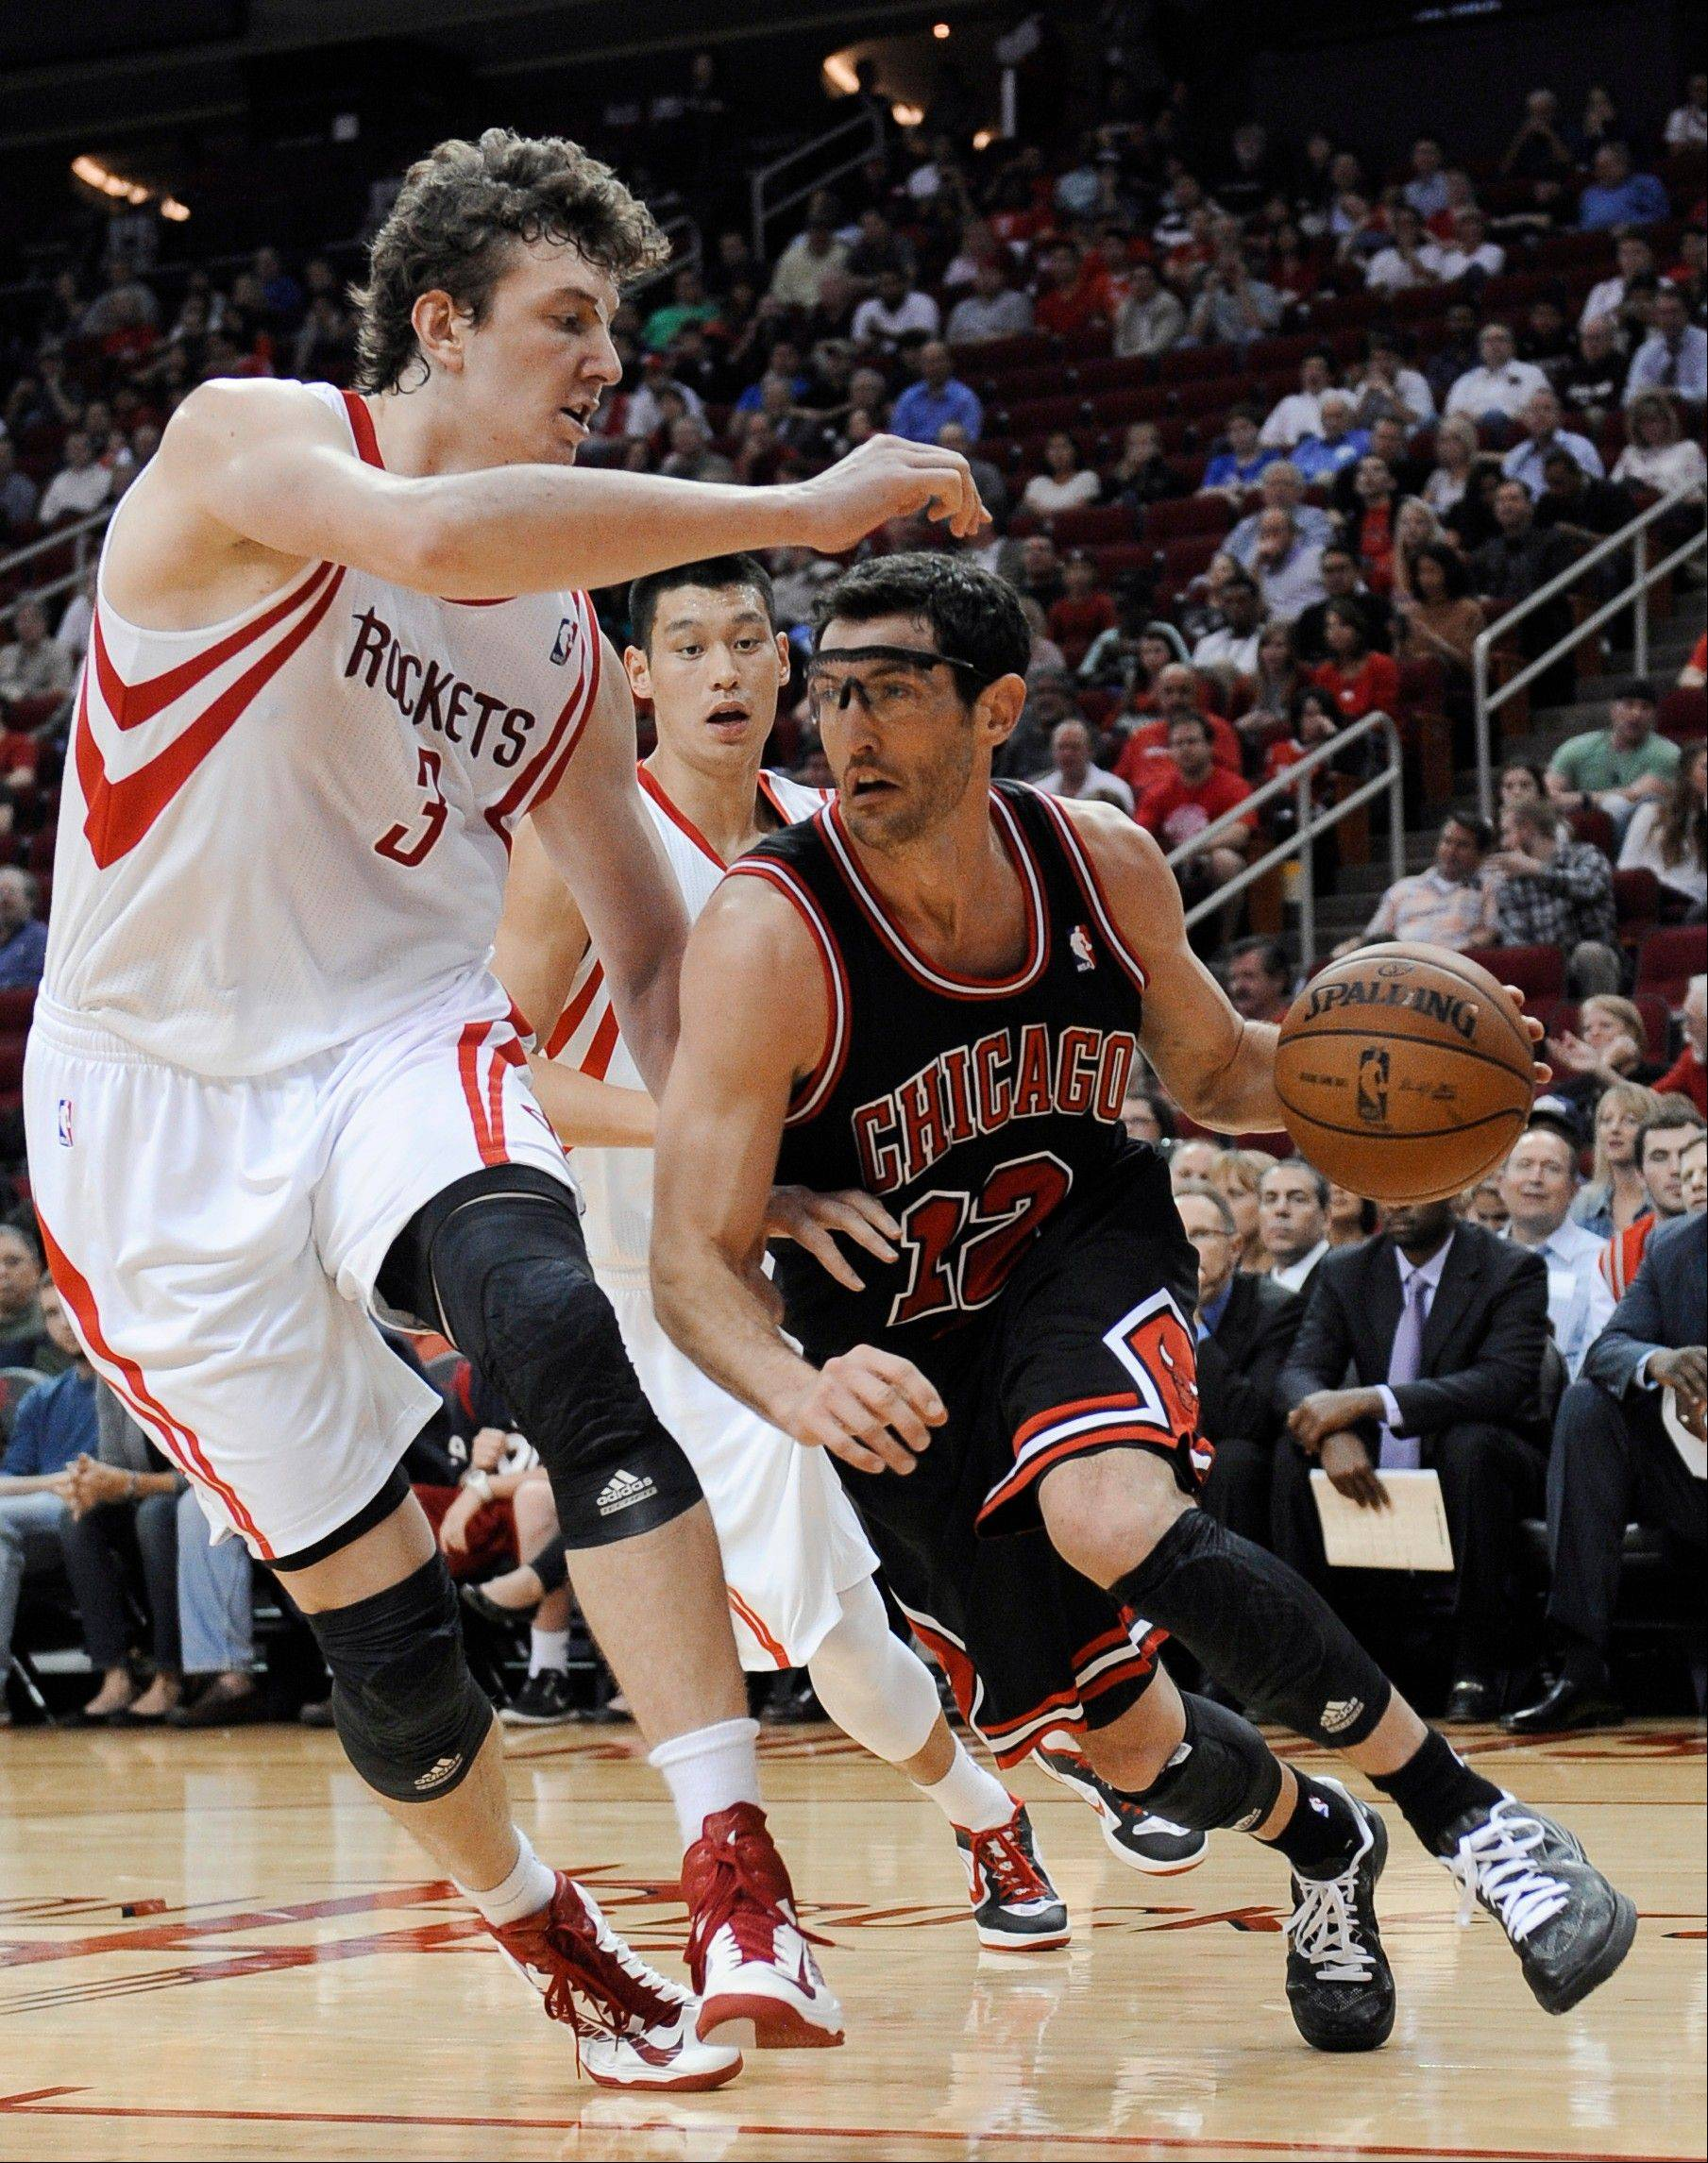 The Bulls' Kirk Hinrich drives around the Rockets' Omer Asik (3) as Jeremy Lin watches from behind in the first half Wednesday in Houston.